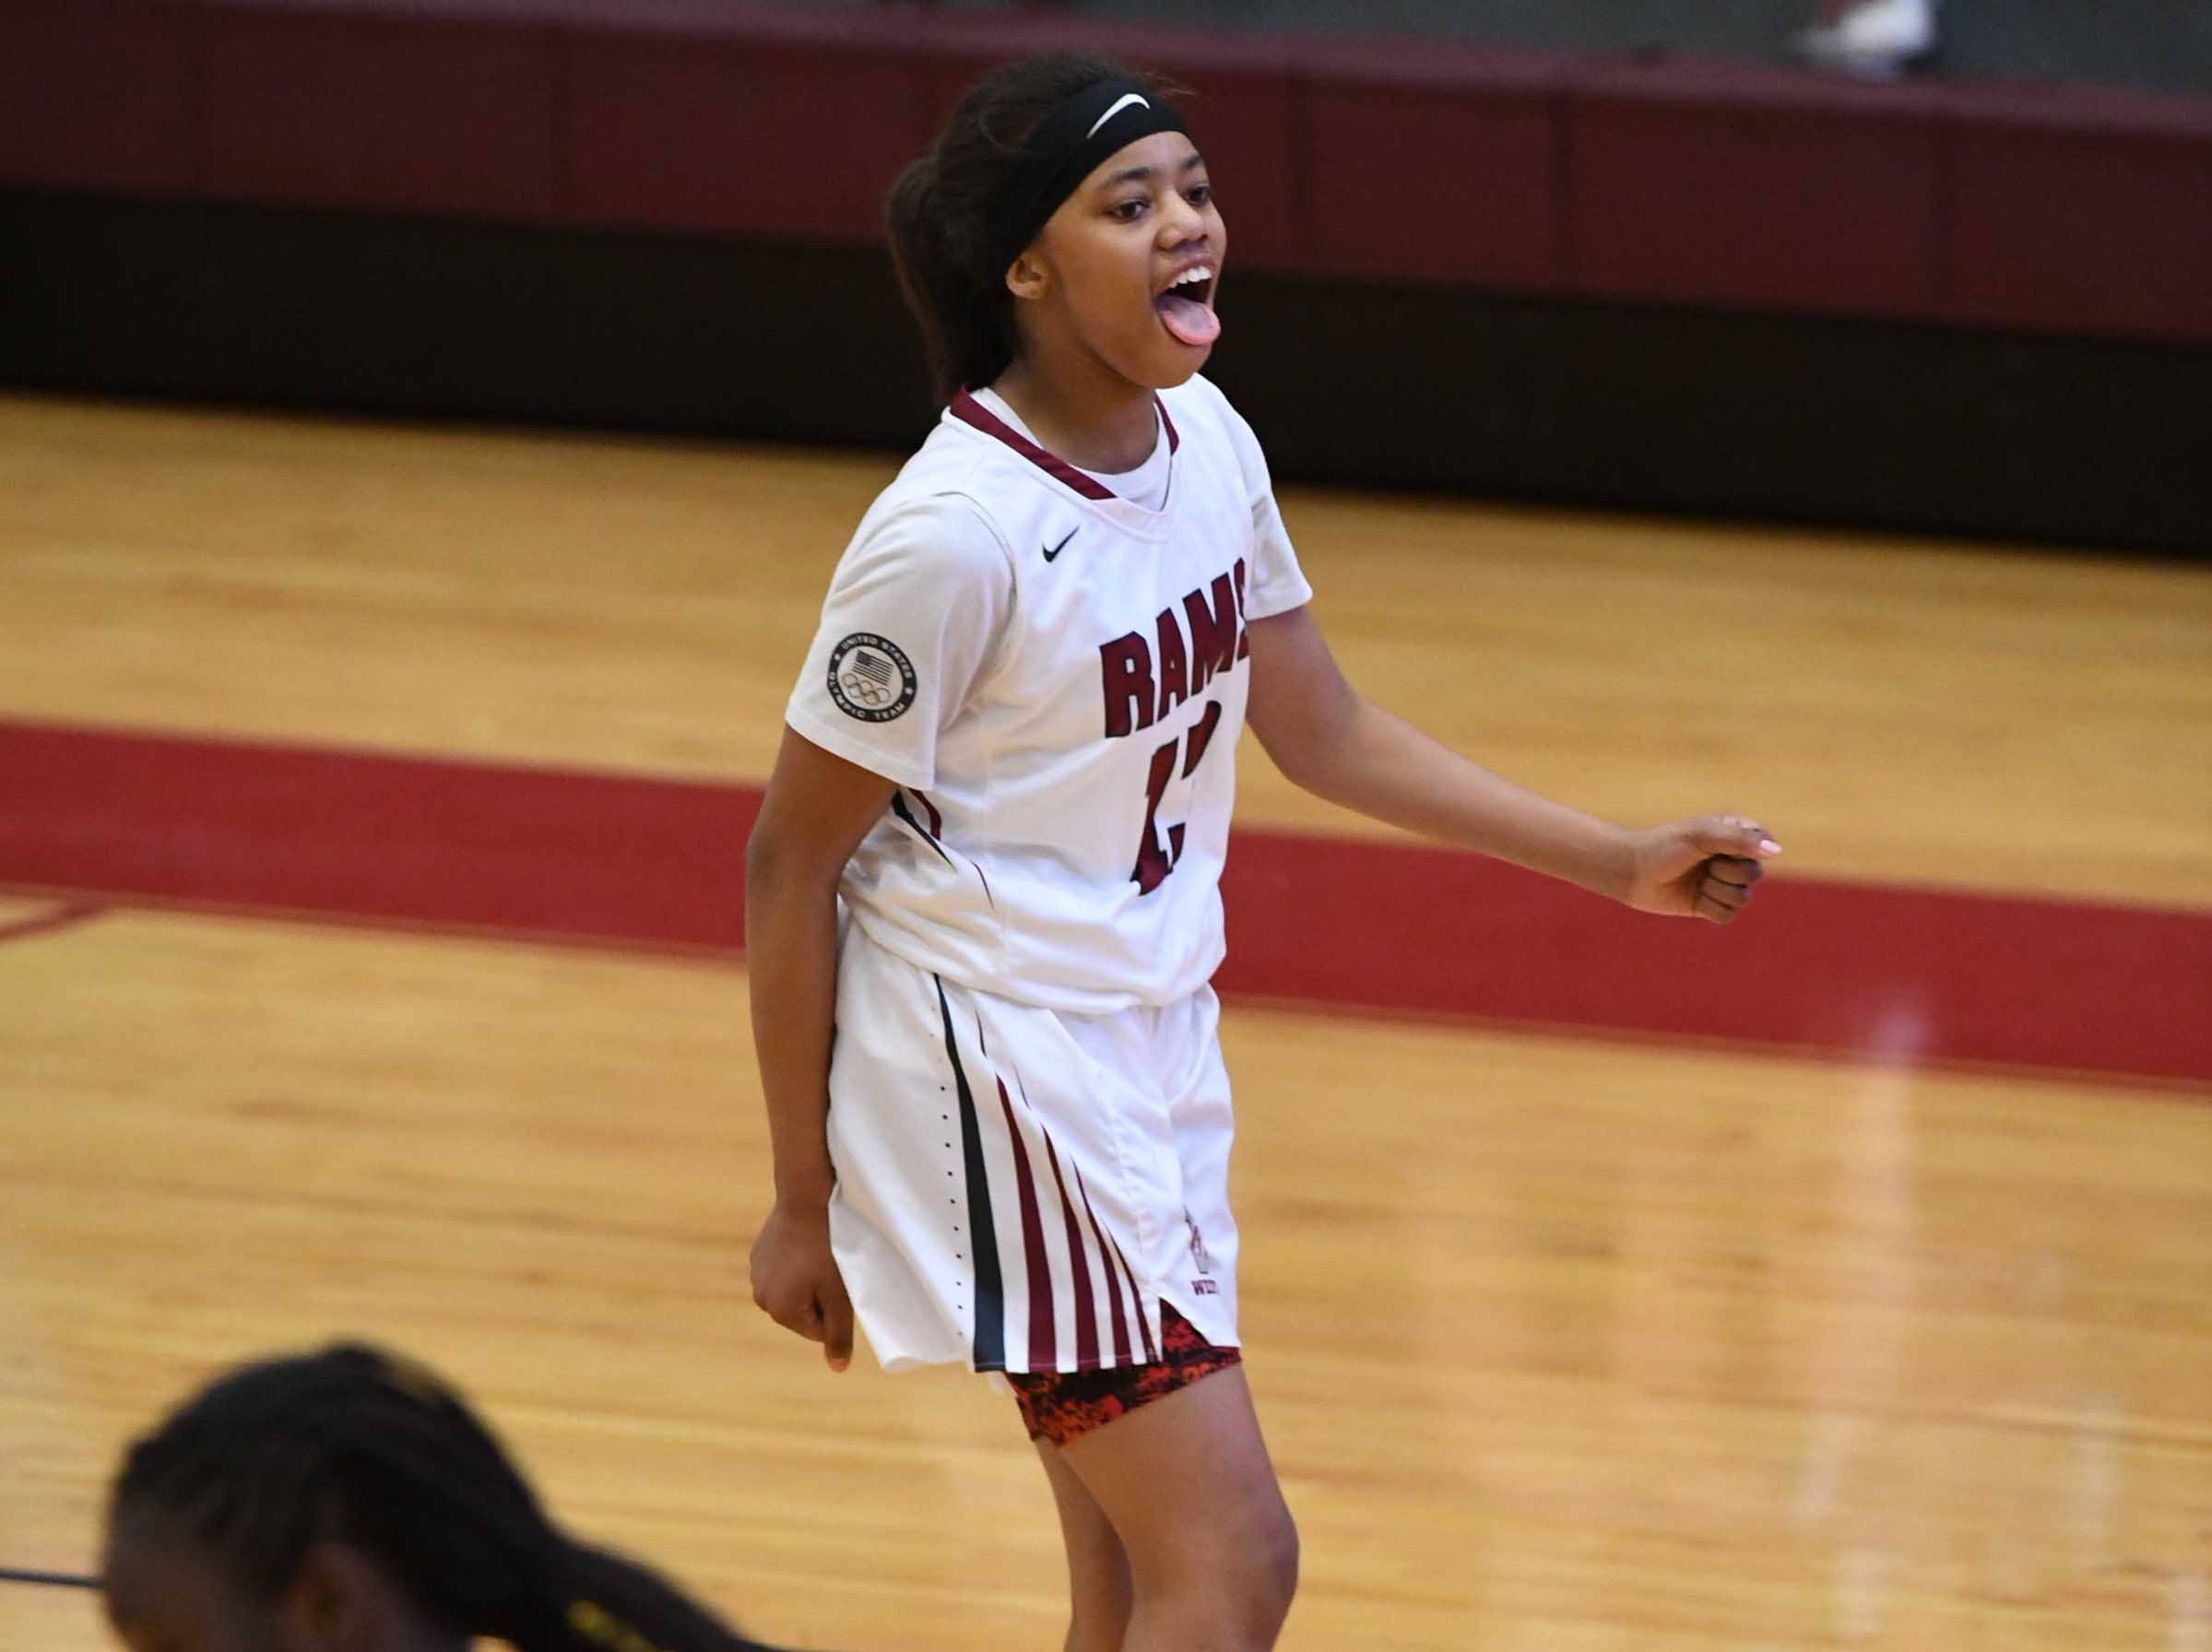 Westside sophomore Khia Pickens(13)reacts after making a shot during the third quarter at Westside High School in Anderson on Friday.